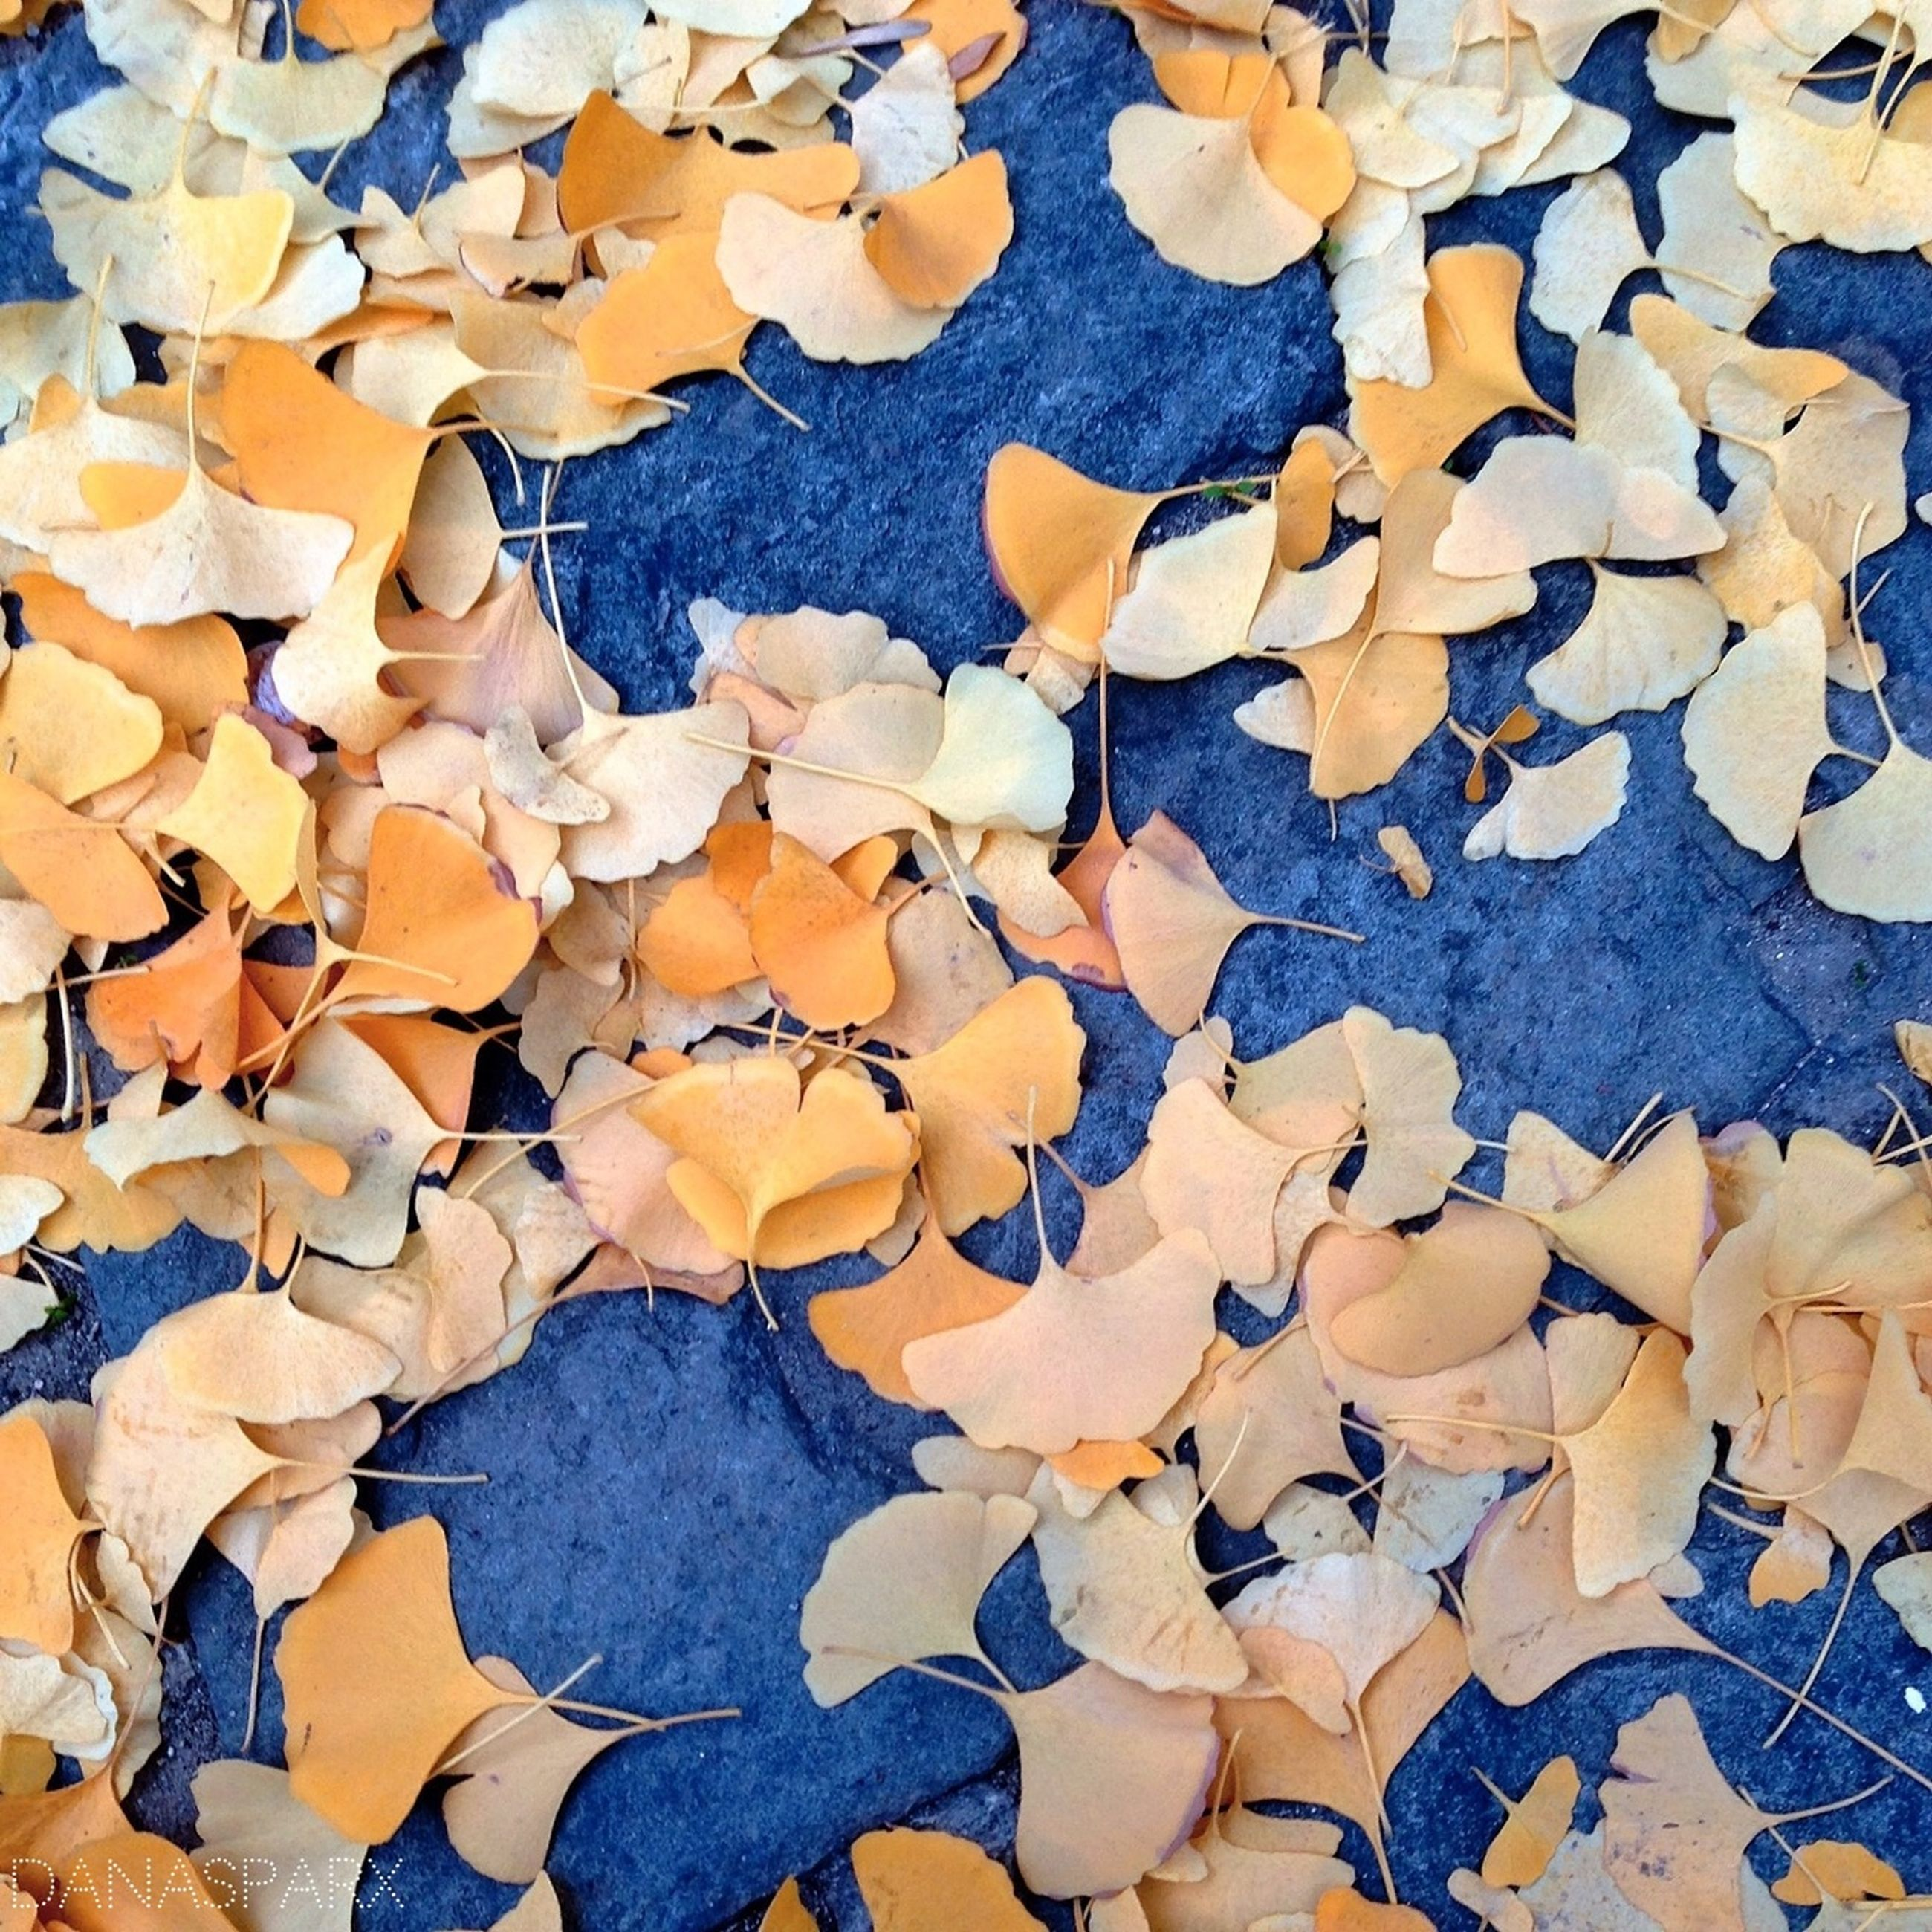 full frame, backgrounds, autumn, abundance, change, large group of objects, leaf, dry, textured, high angle view, season, pattern, leaves, fallen, day, outdoors, no people, nature, natural pattern, close-up